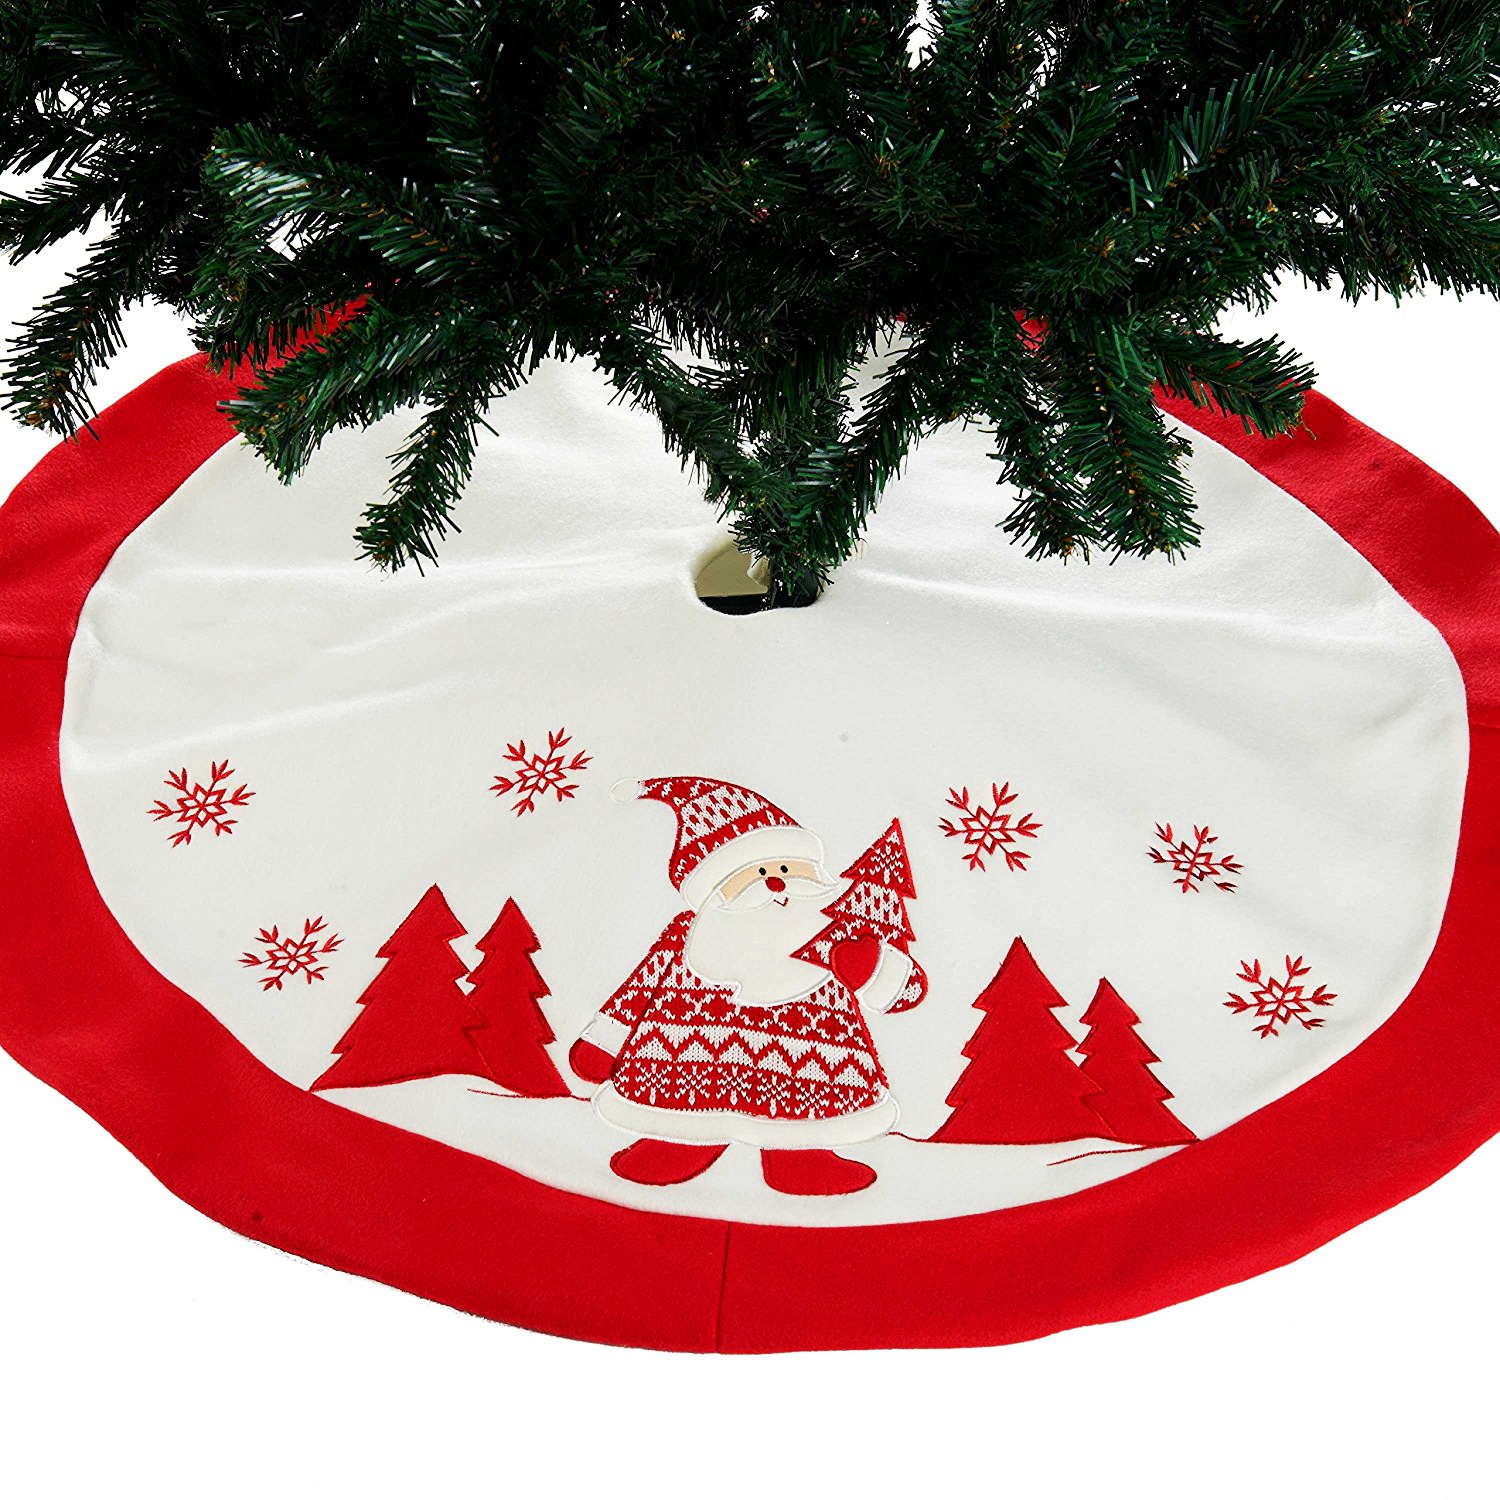 High Quality Embroidered Santa Claus Christmas Tree Skirt For XMAS Tree Decoration New Year Home Party Supplies